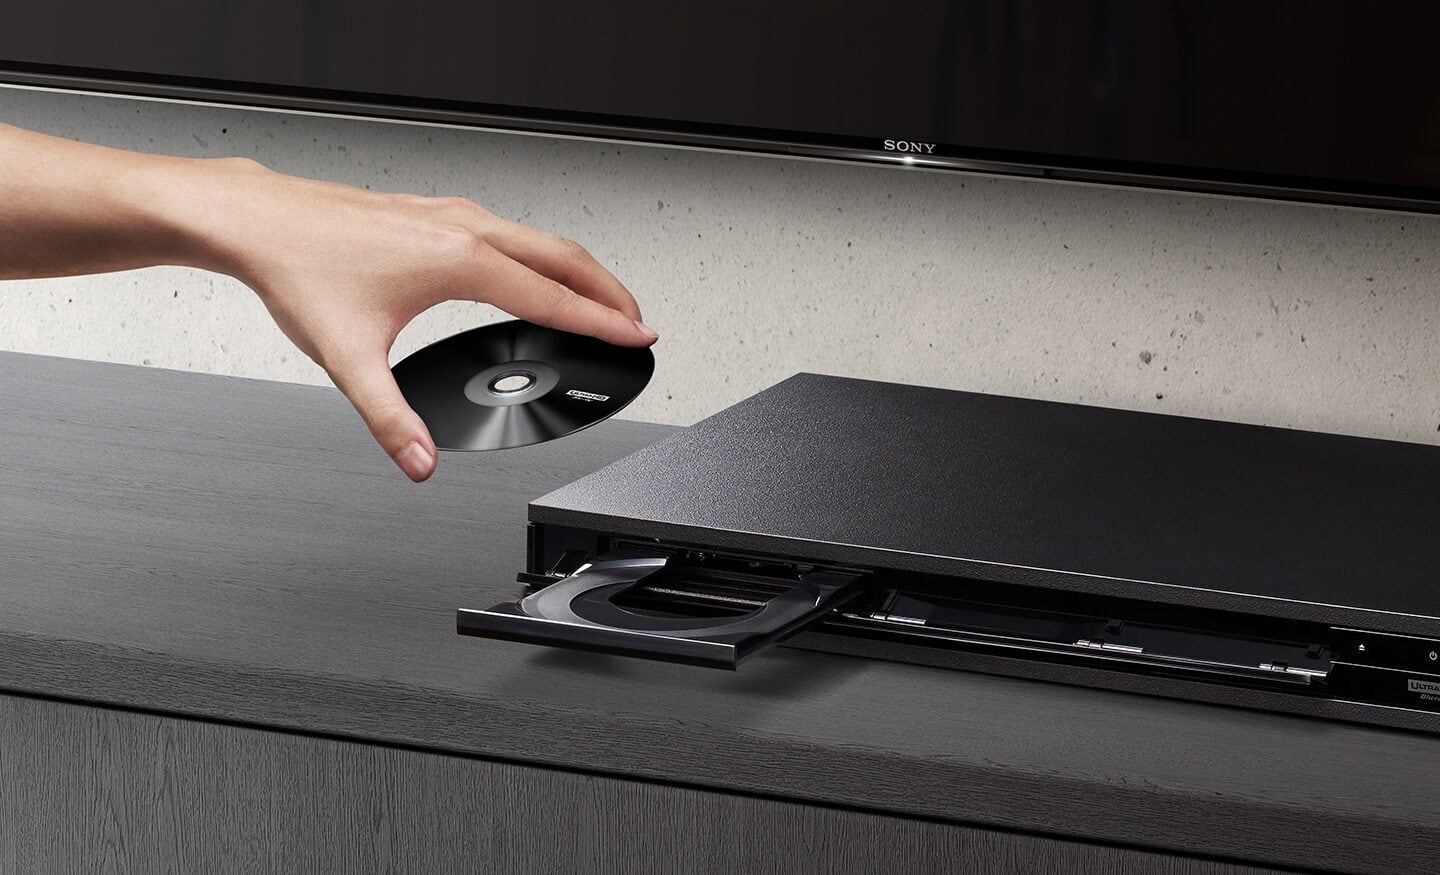 Sony UBP-X1100ES 4K UHD Blu-ray Player brings the movie theater to your living room